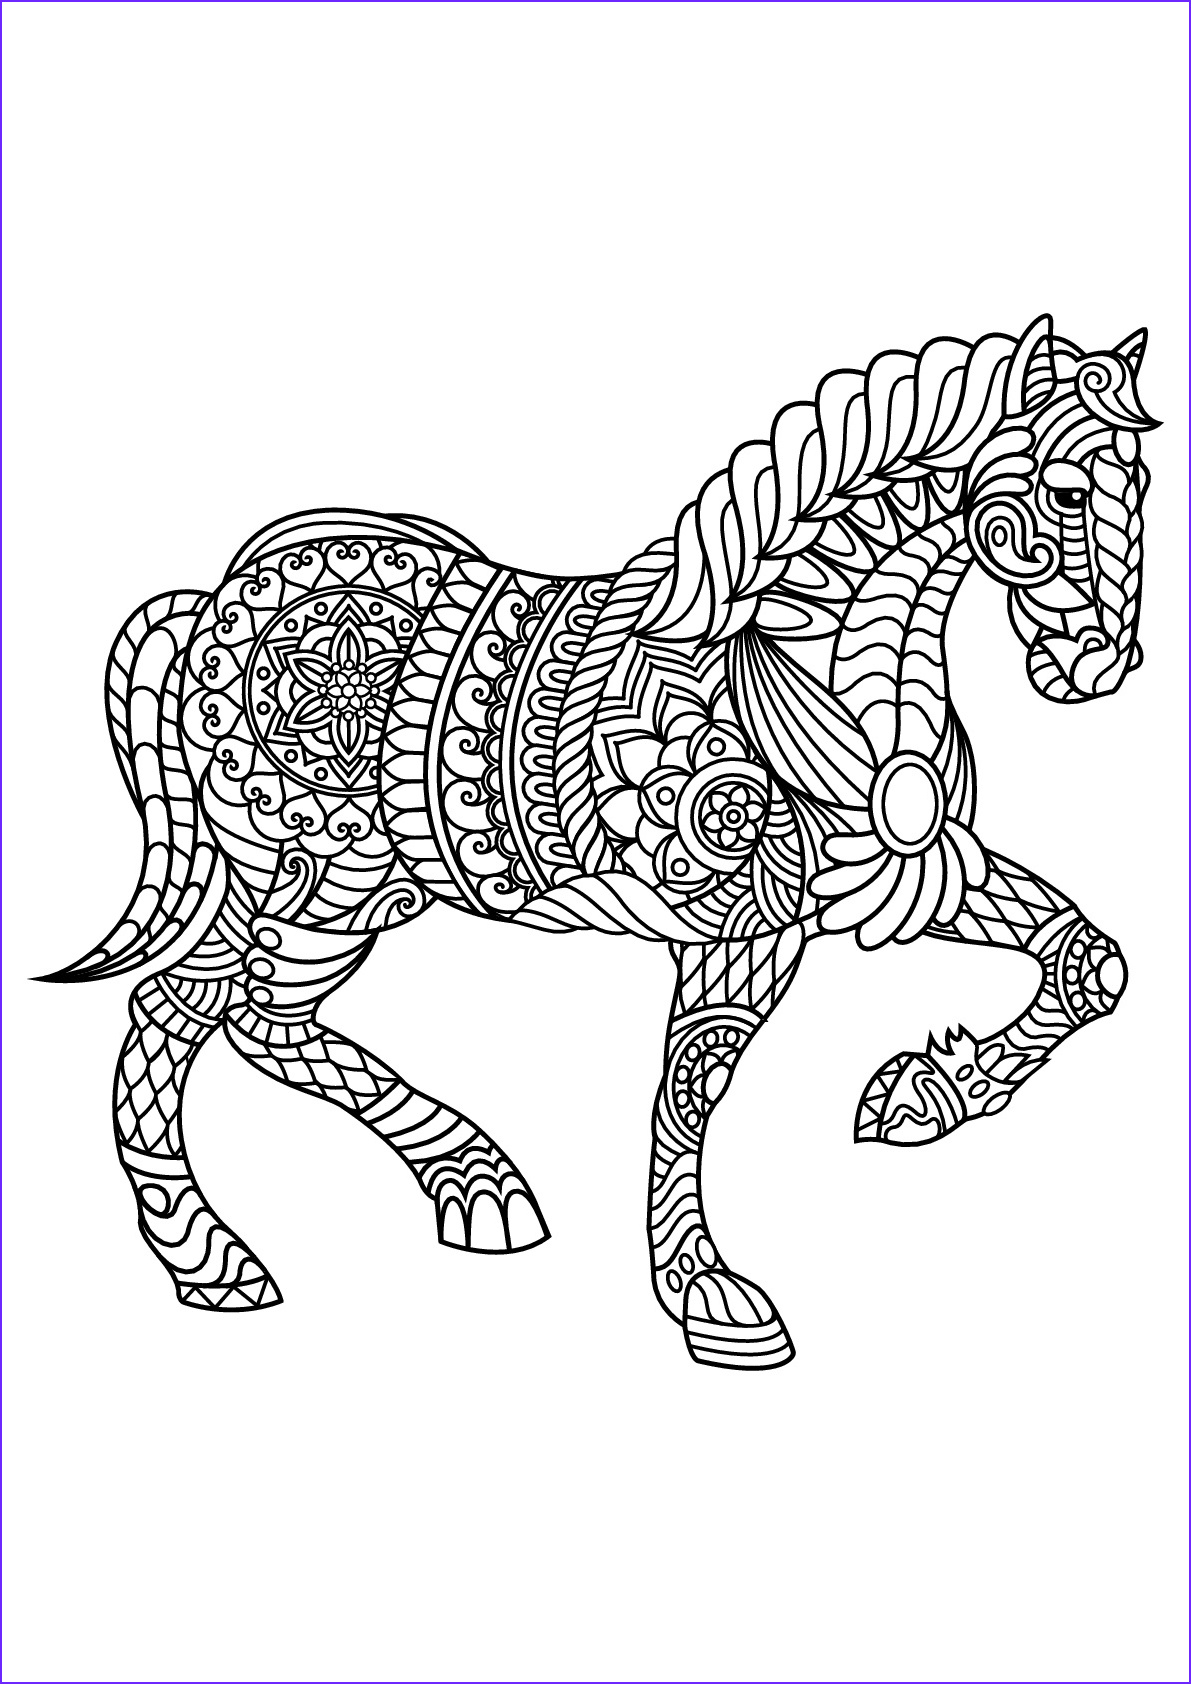 Free Printable Adult Coloring Pages Awesome Image Free Book Horse Horses Adult Coloring Pages